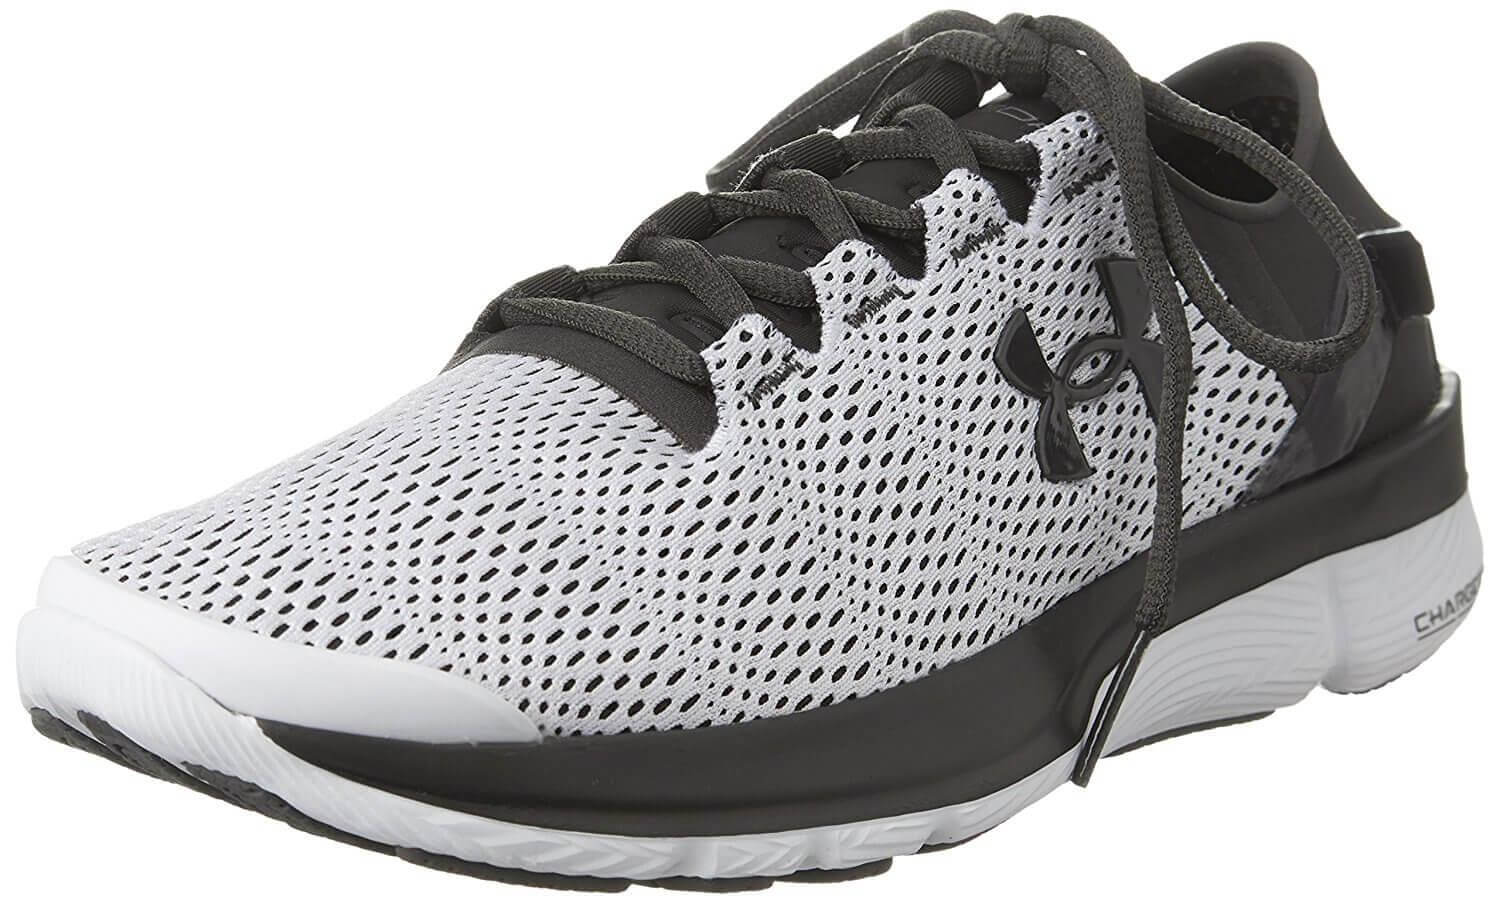 Best Long Distance Running Shoes [2021 updated] The Shoes